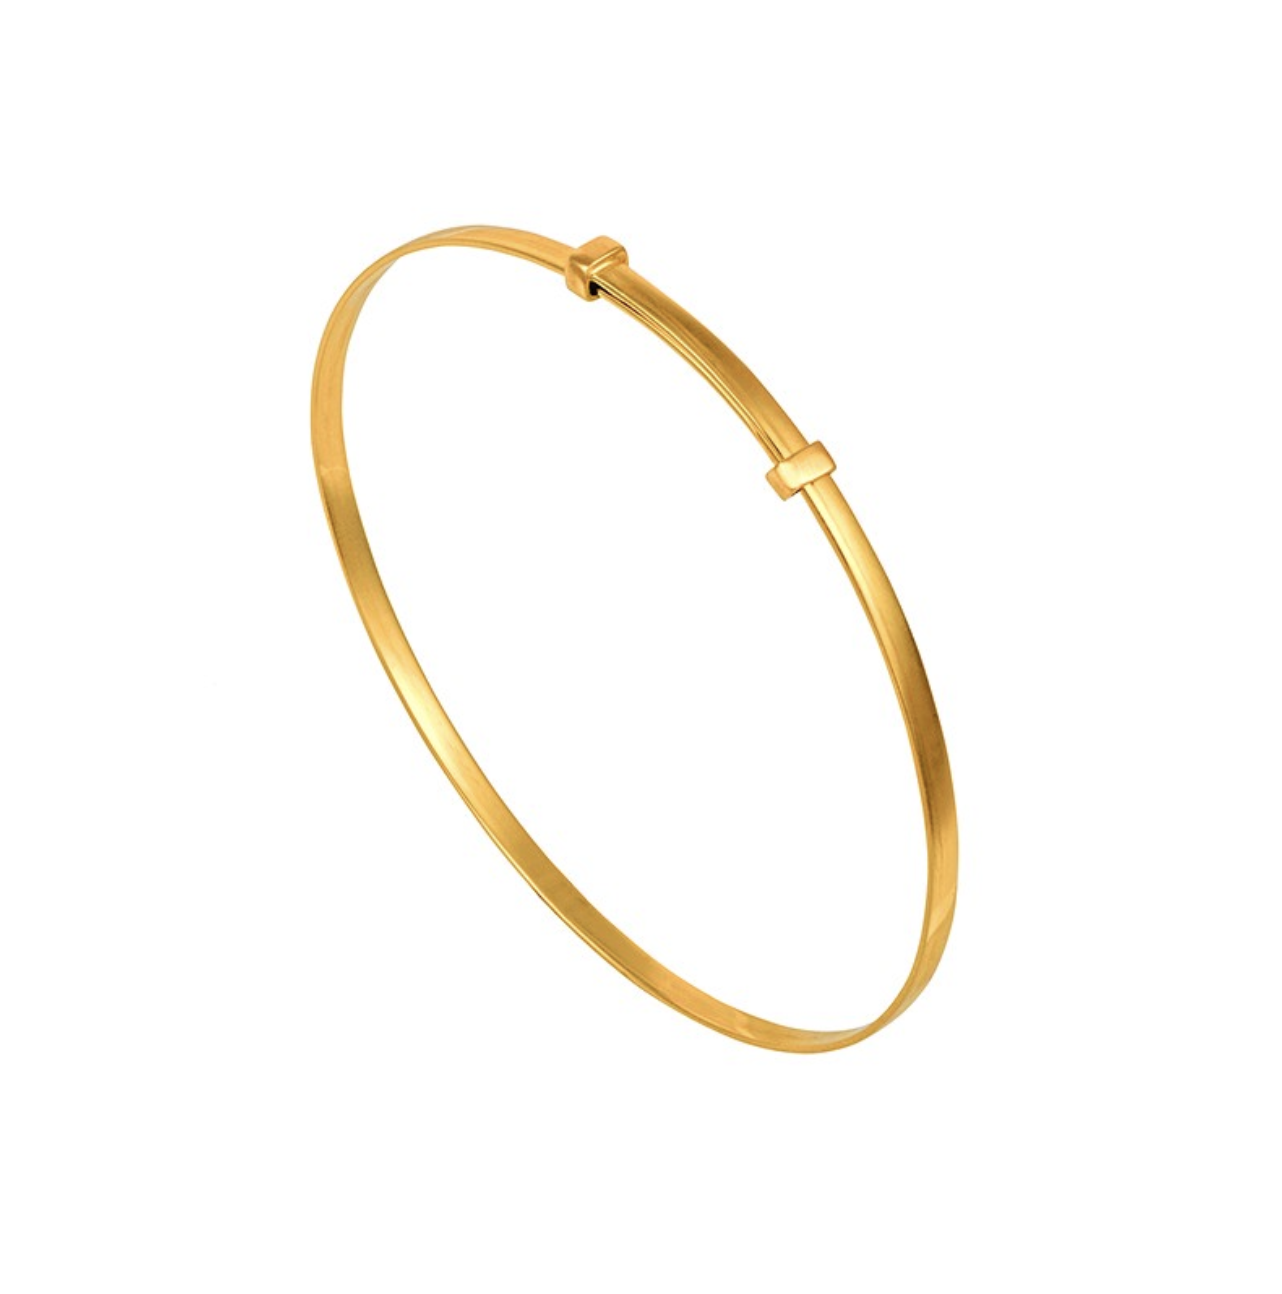 Comment porter le bracelet jonc en or 18 carats - Mangue Poudrée - Influenceuse Reims Paris Lille or reglable